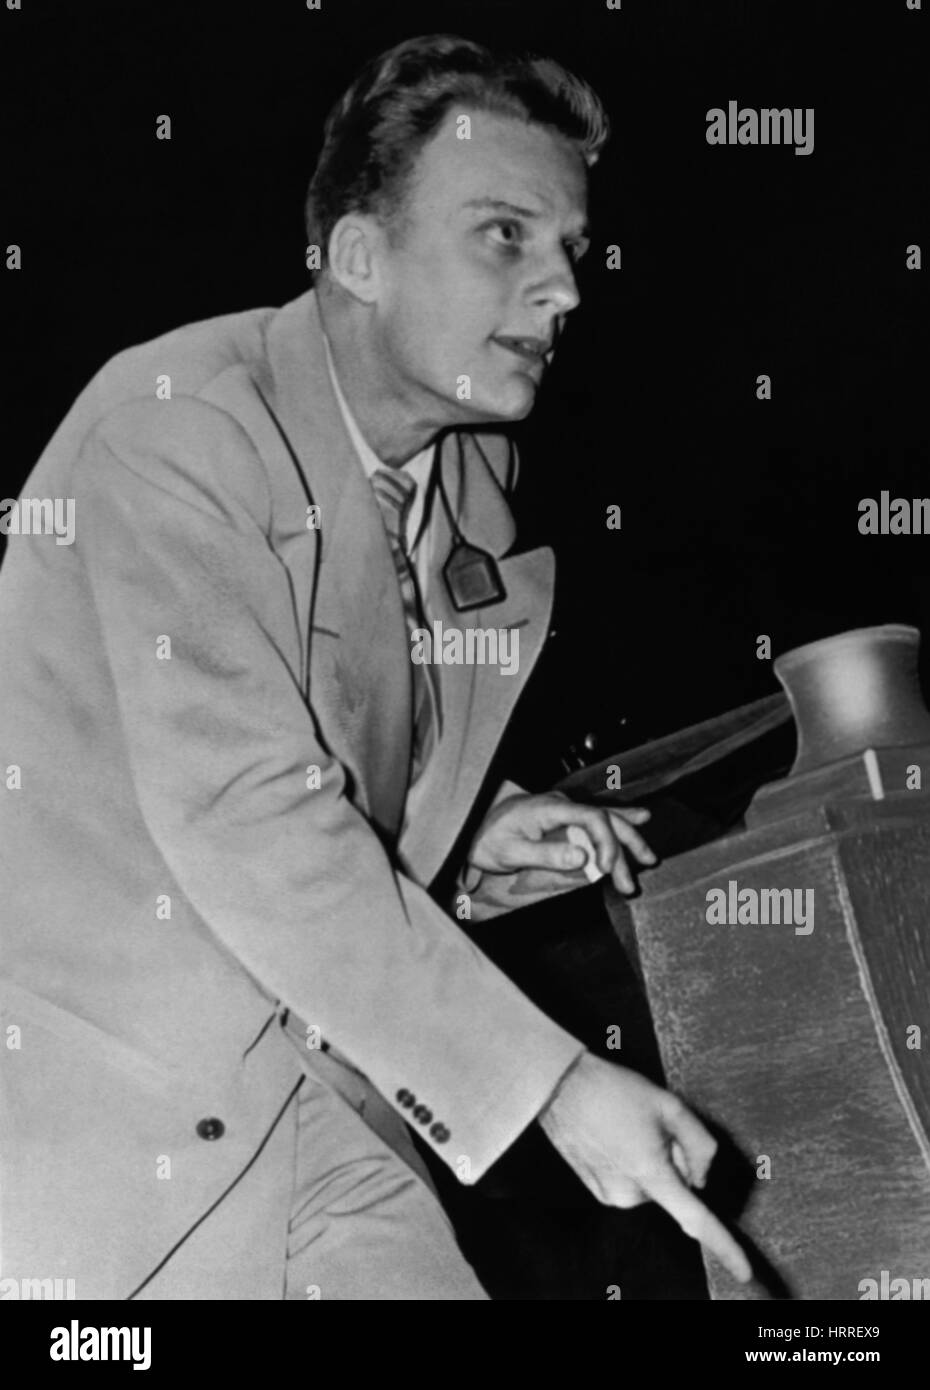 Billy Graham preaching at a tent meeting in Los Angeles California in 1949. (USA  sc 1 st  Alamy & Billy Graham preaching at a tent meeting in Los Angeles ...